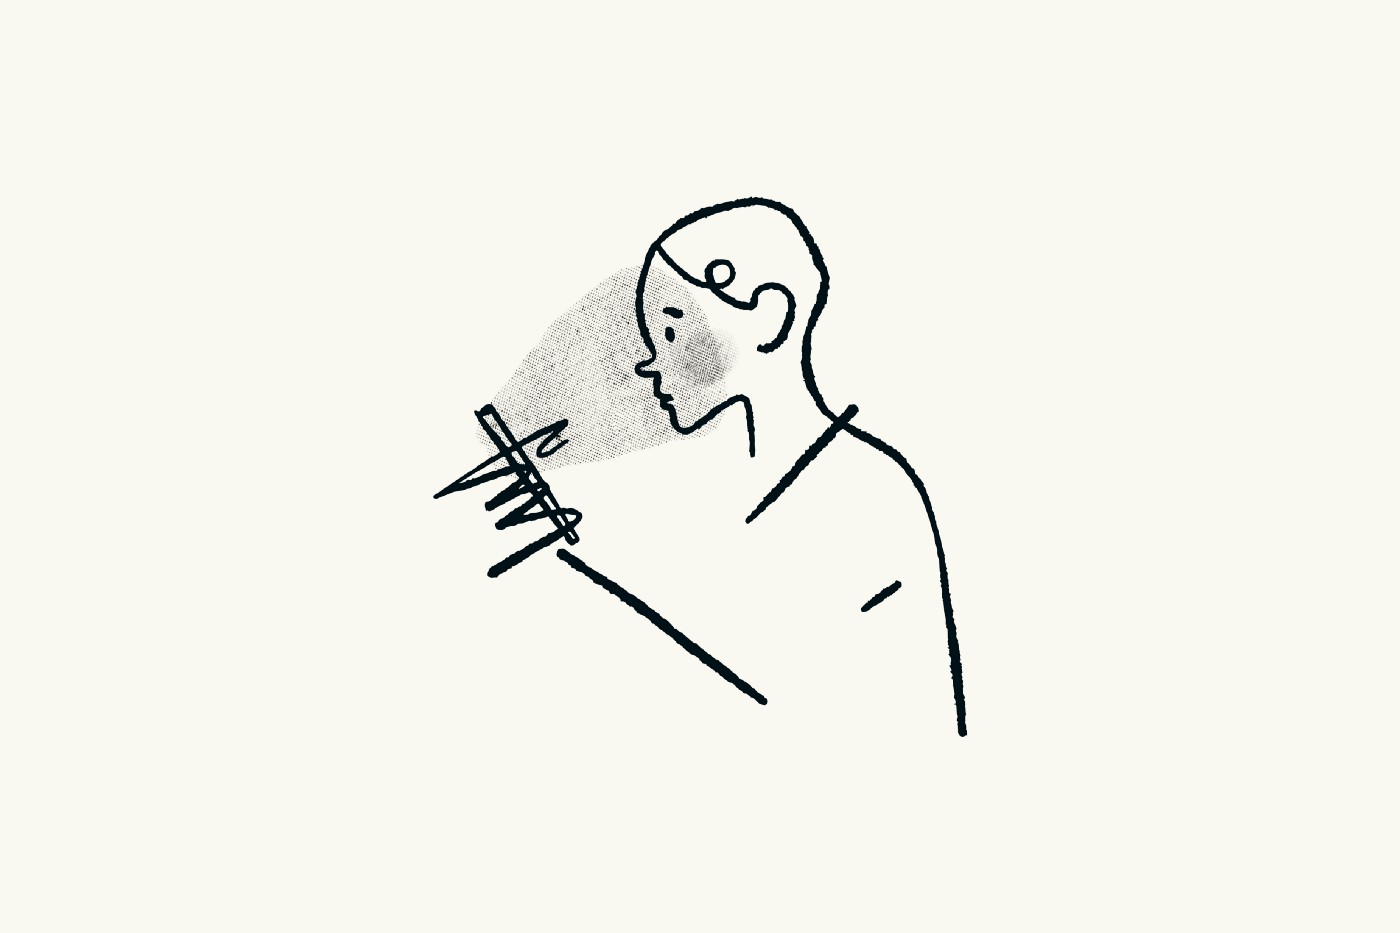 Line drawing of a person looking at their phone